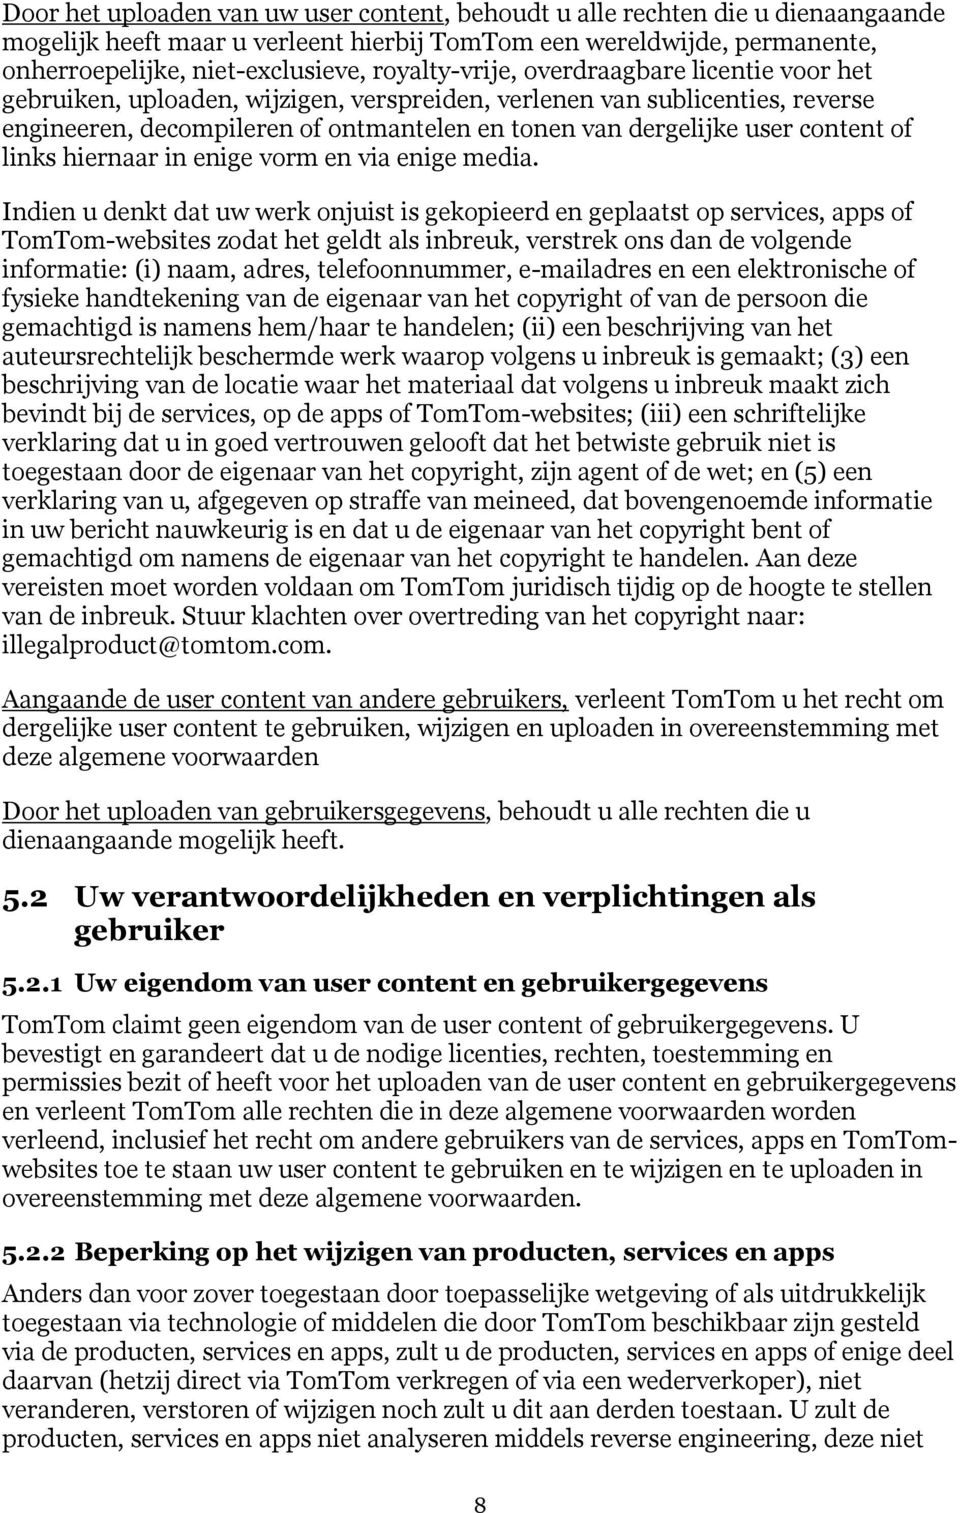 content of links hiernaar in enige vorm en via enige media.